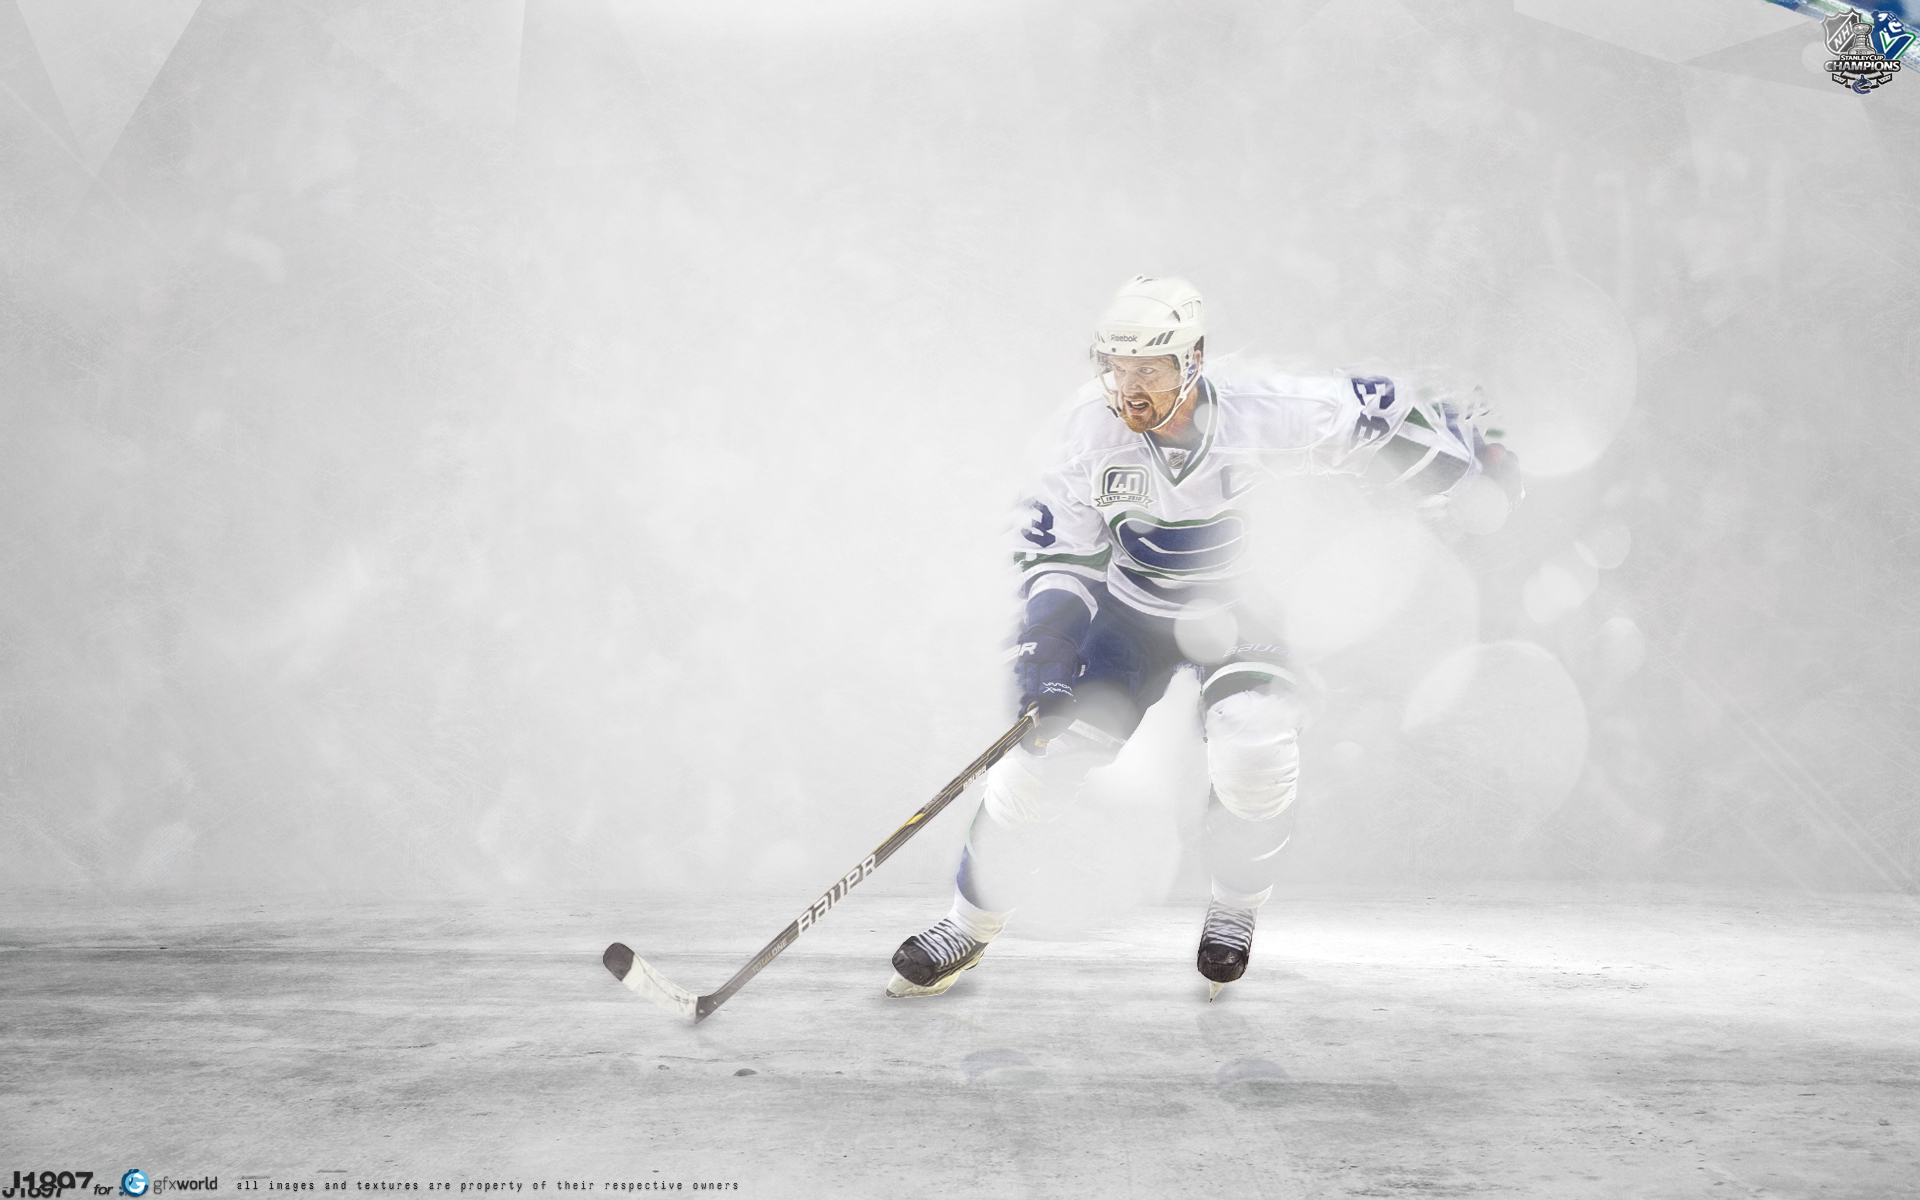 Free Download Ice Hockey Wallpapers High Quality Download 1920x1200 For Your Desktop Mobile Tablet Explore 73 Hockey Wallpaper Ice Hockey Wallpaper Nhl Wallpapers Nhl Desktop Wallpaper